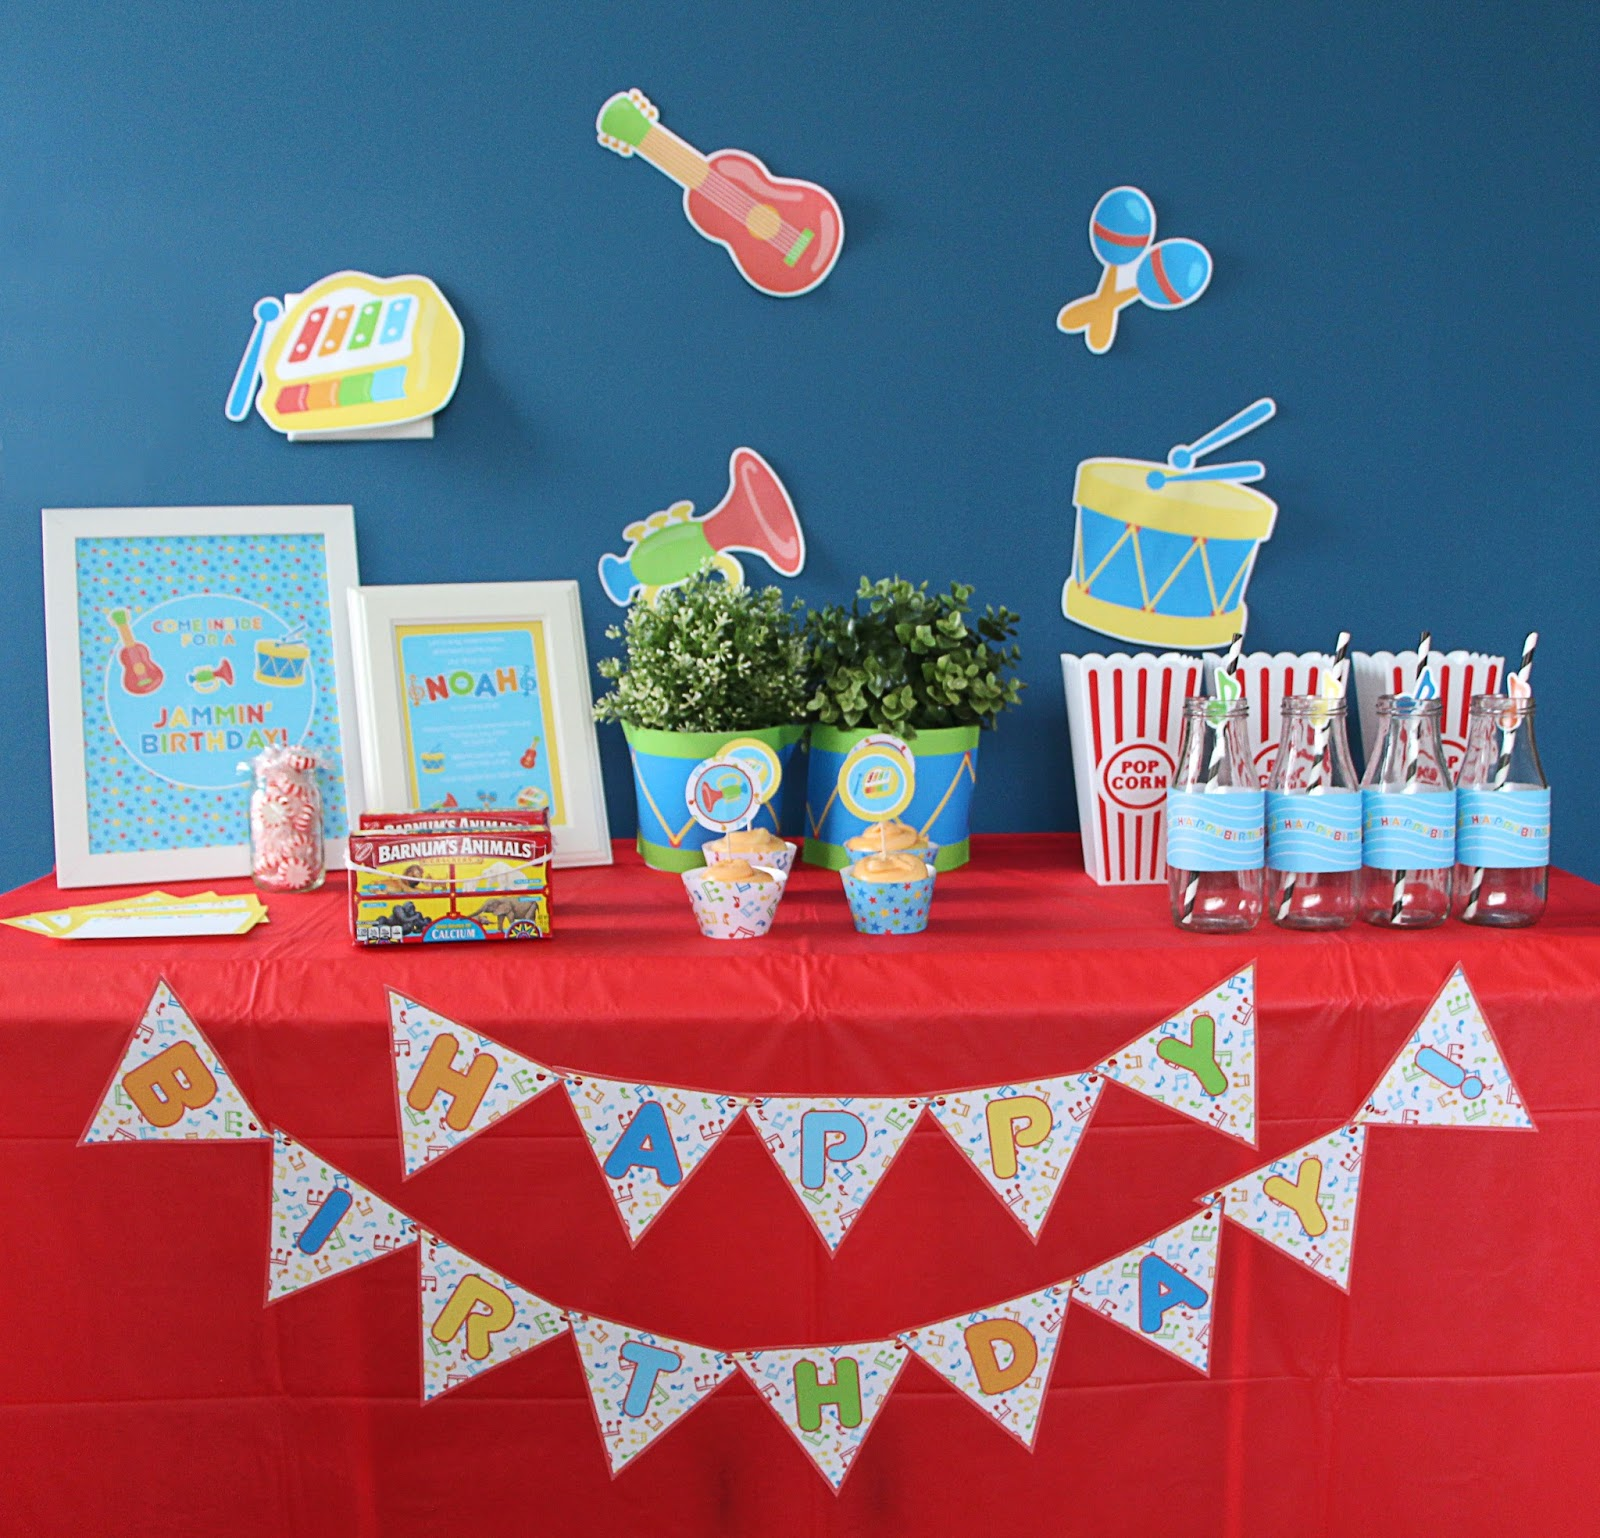 Whirligigs Party Co: A Music Birthday Party